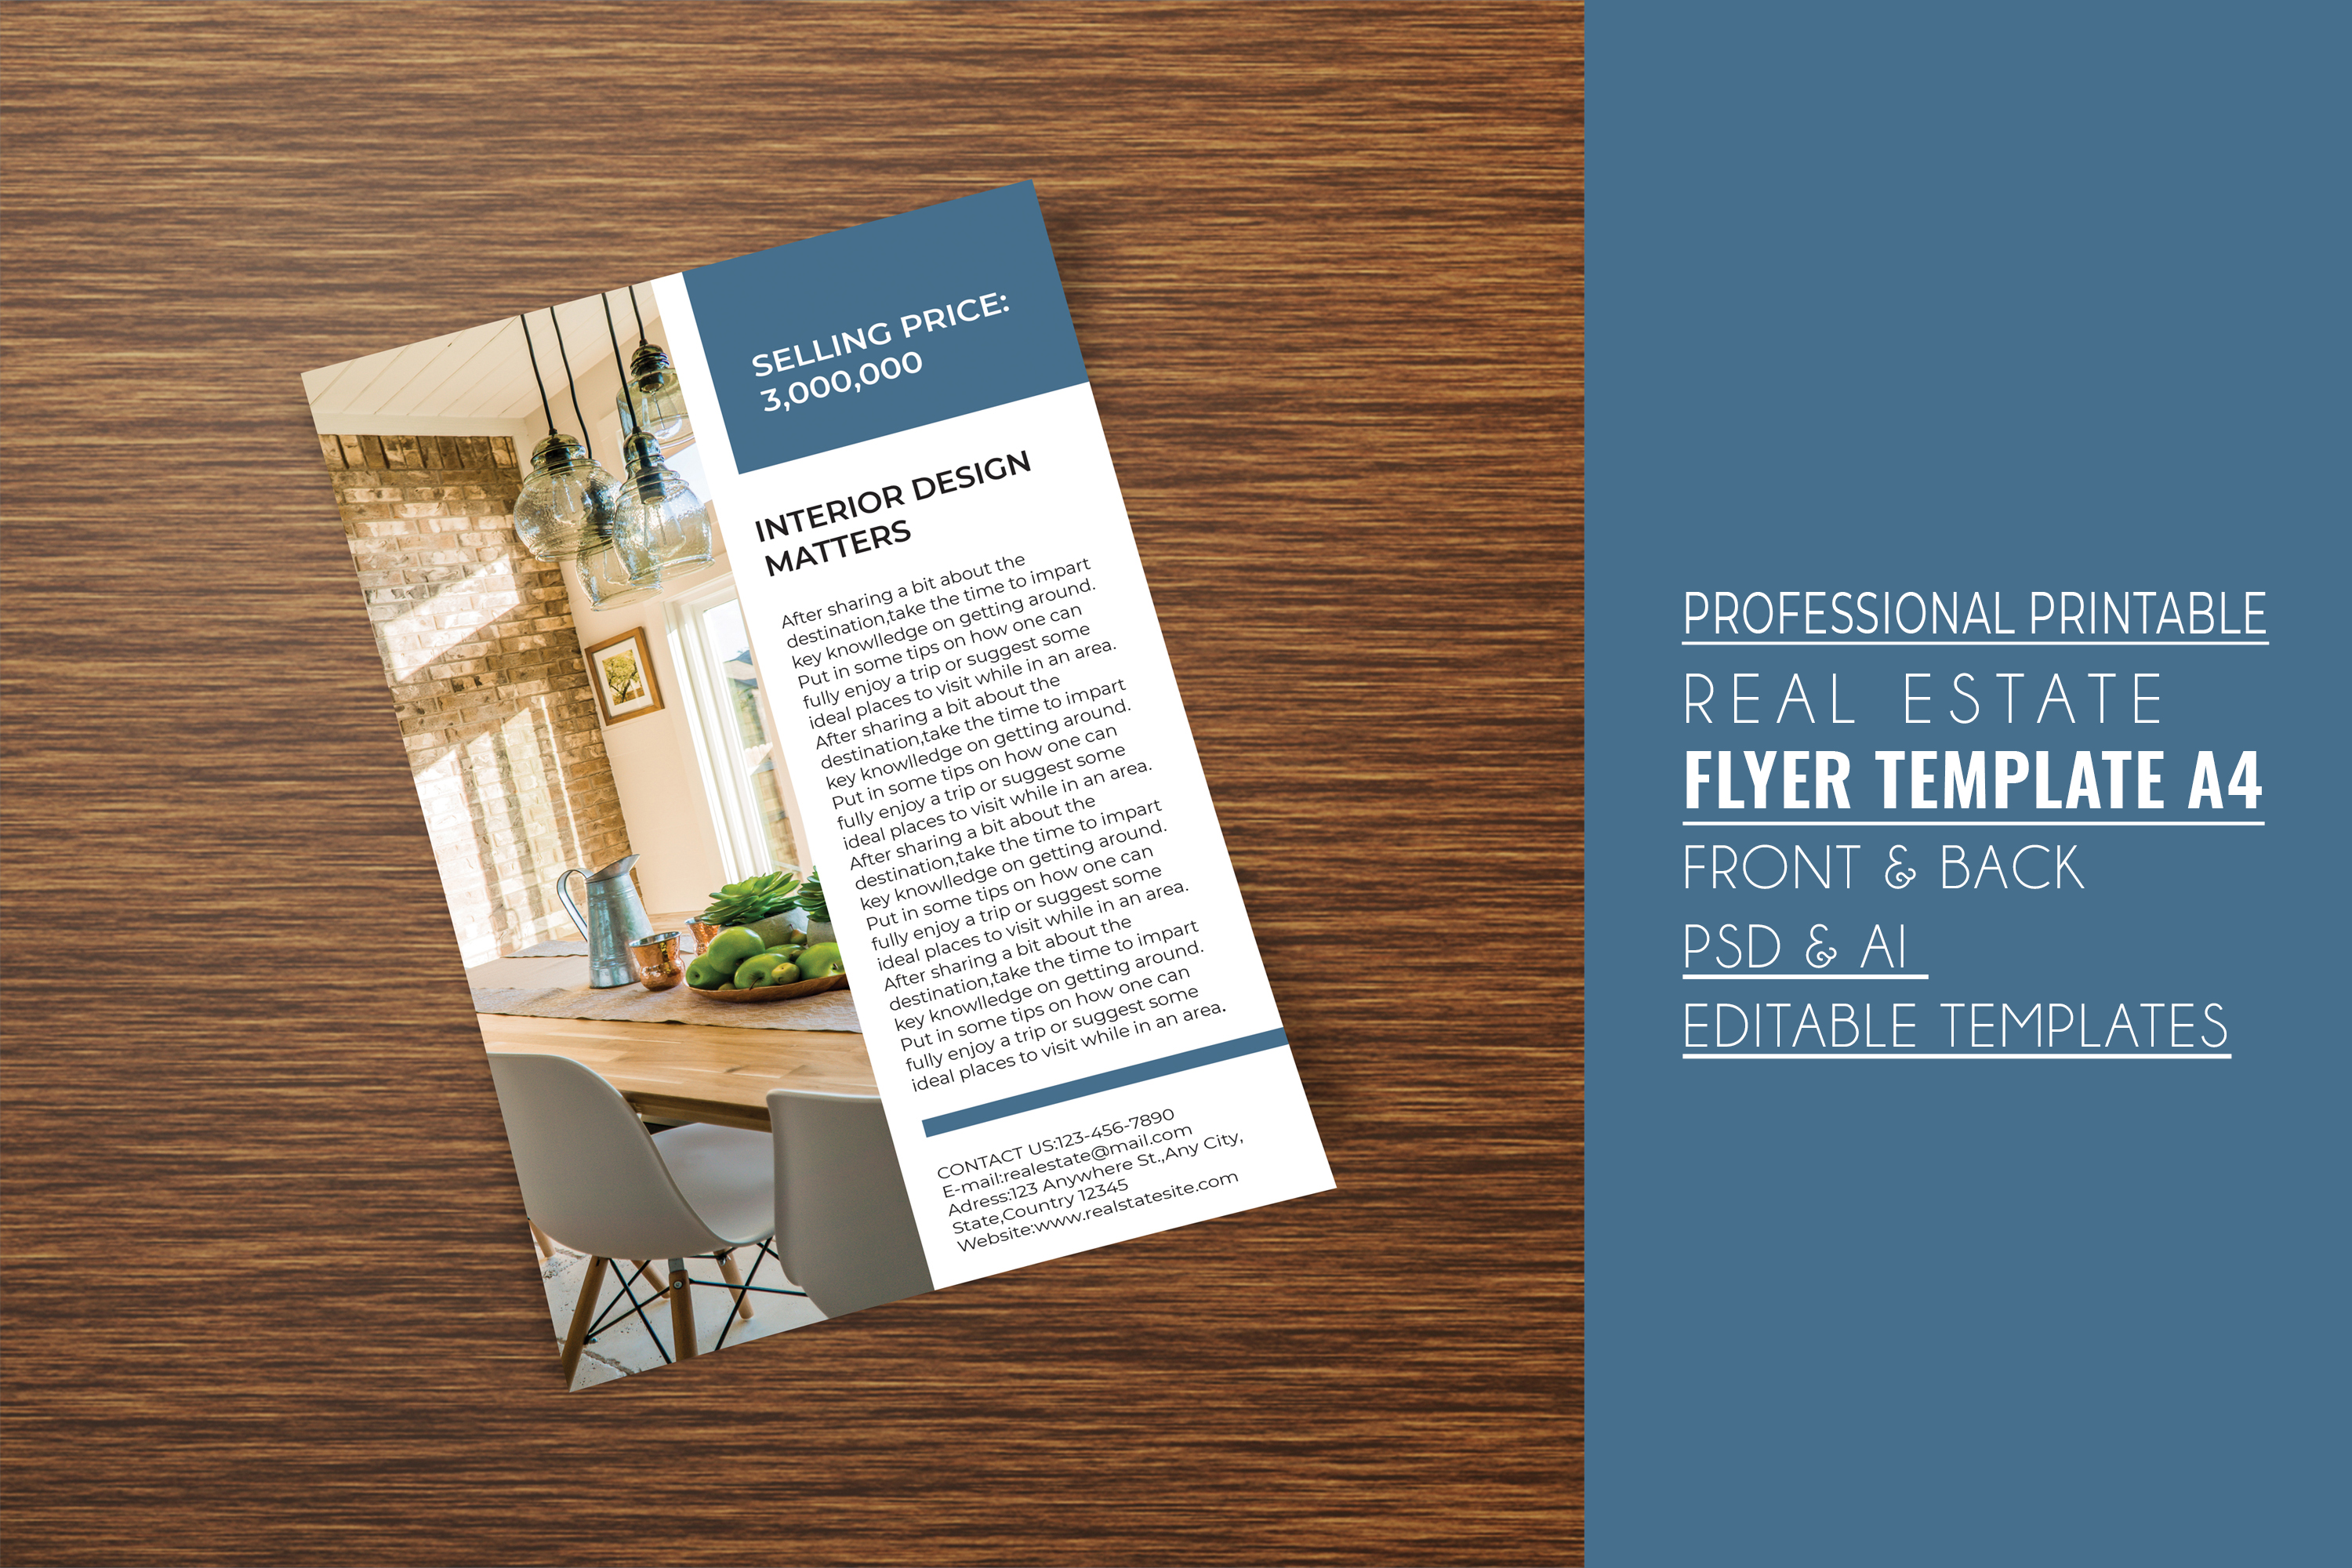 Professional Real Estate Flyer A4 - Printable Templates example image 6